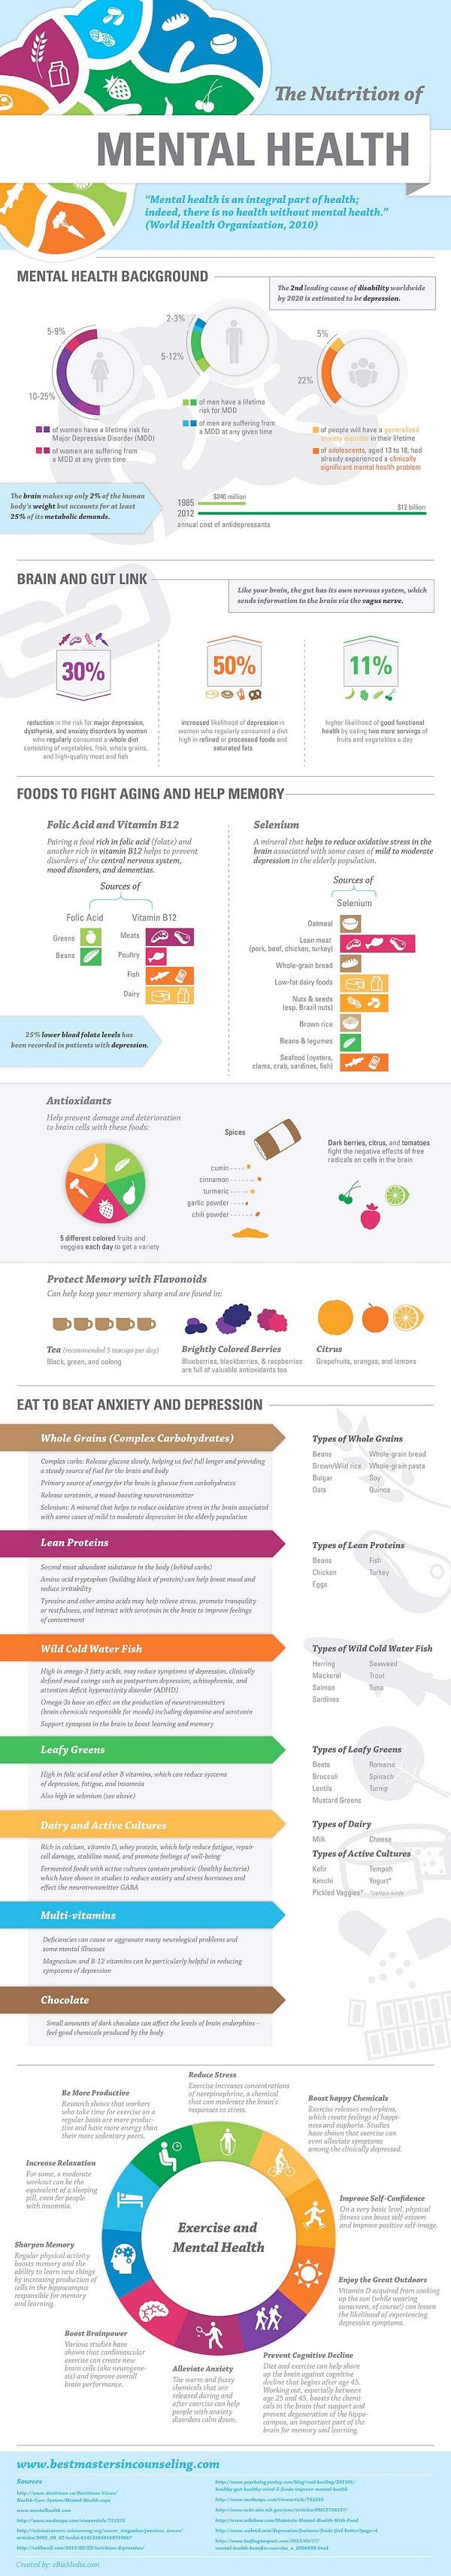 Infographic: Nutrition Of Mental Health | ConsumersCompare.org